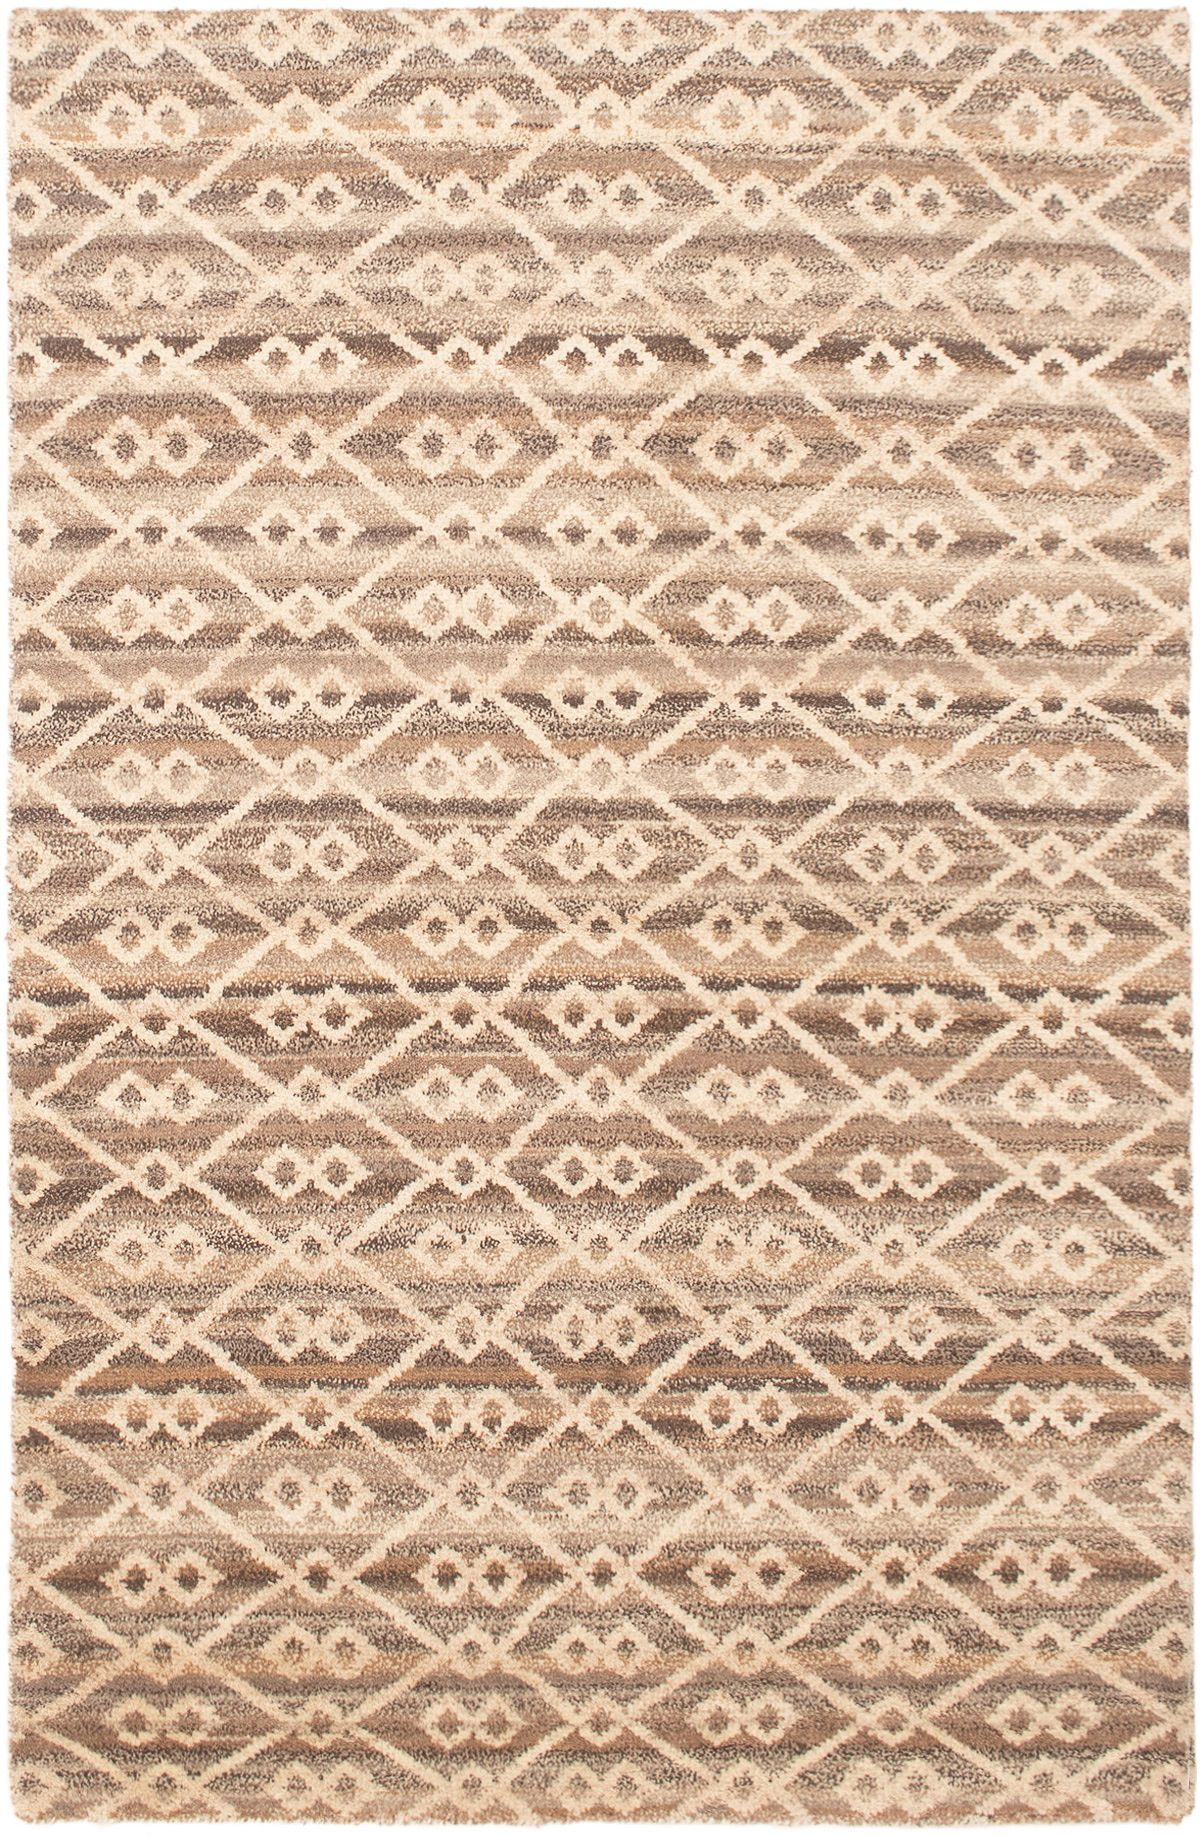 """Hand-knotted Tangier Cream Wool Rug 5'1"""" x 7'11""""  Size: 5'1"""" x 7'11"""""""